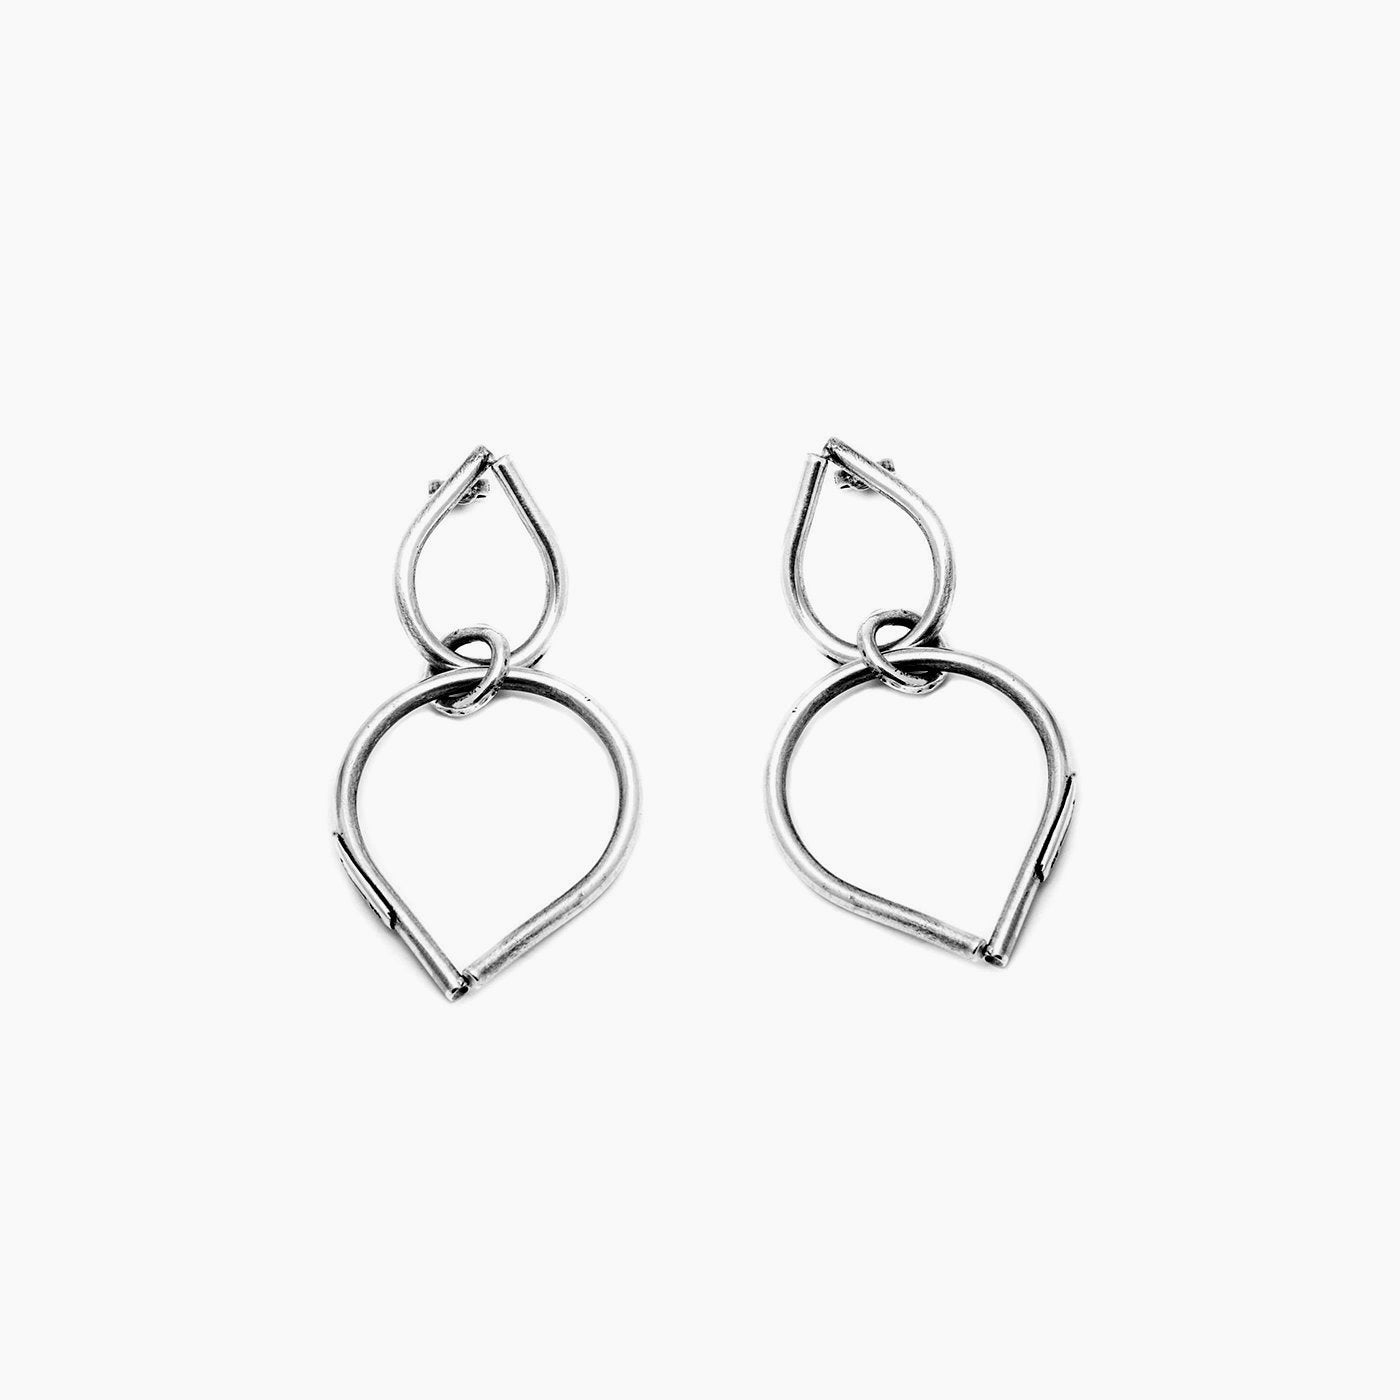 earrings chaotic bond silver product view innan jewellery